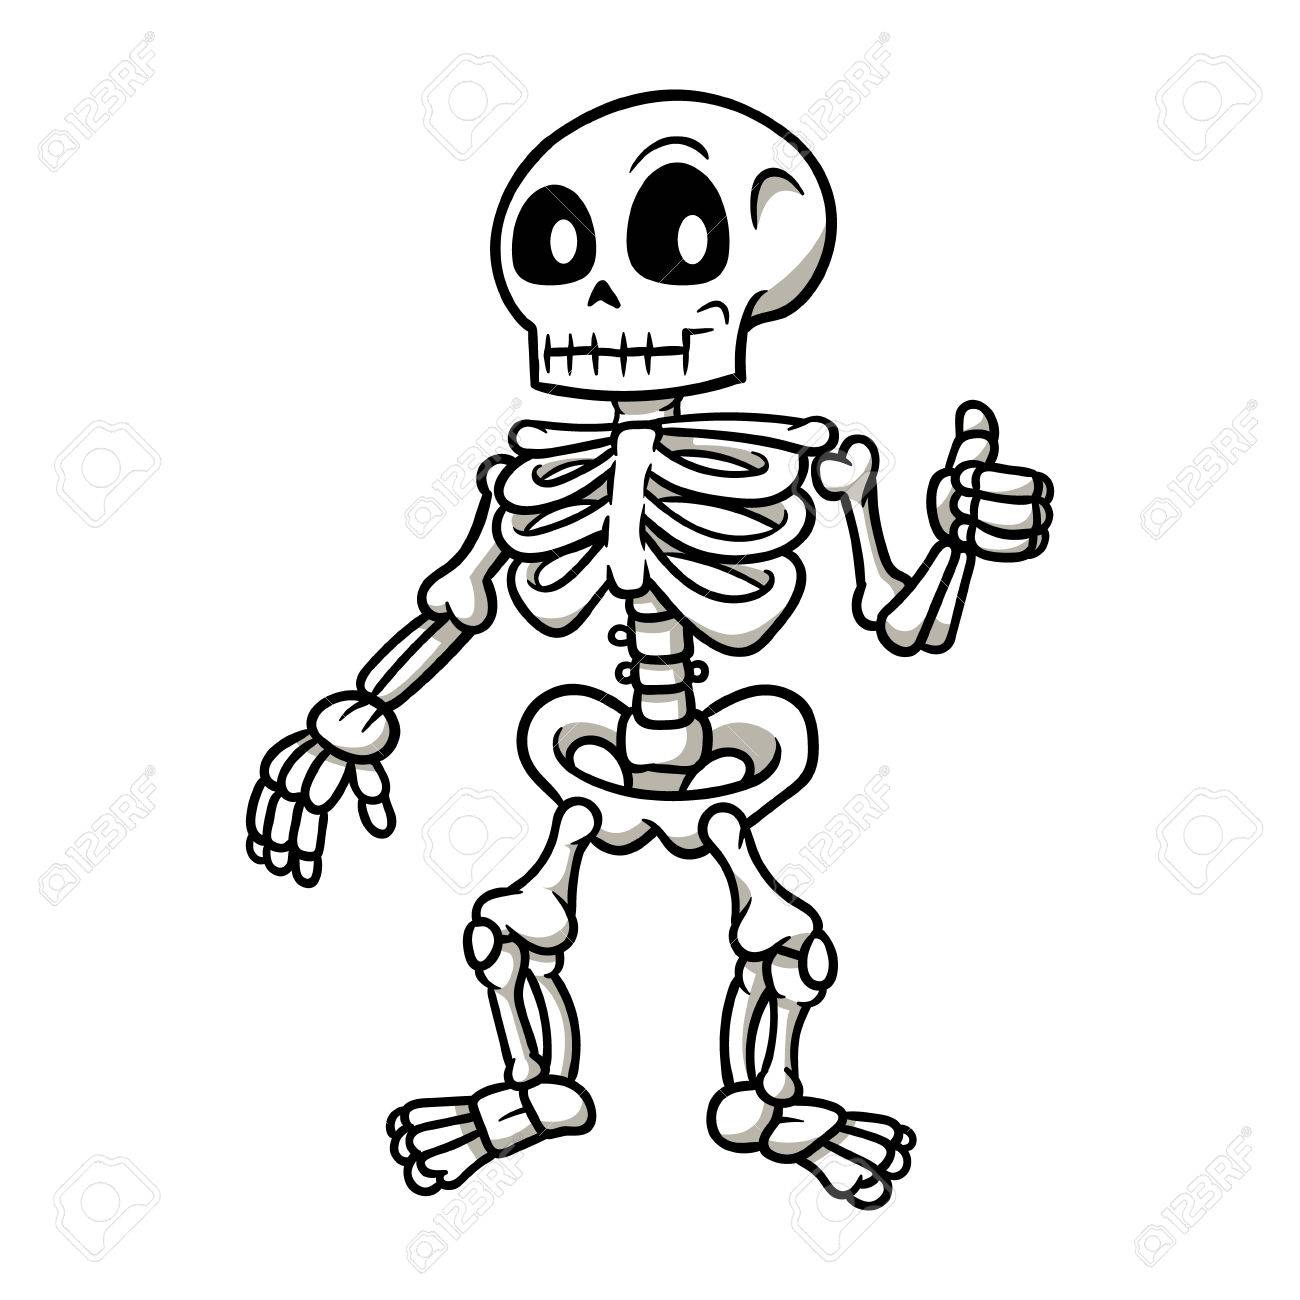 1300x1300 Cartoon Skeleton Giving A Thumbs Up Vector Illustration Royalty